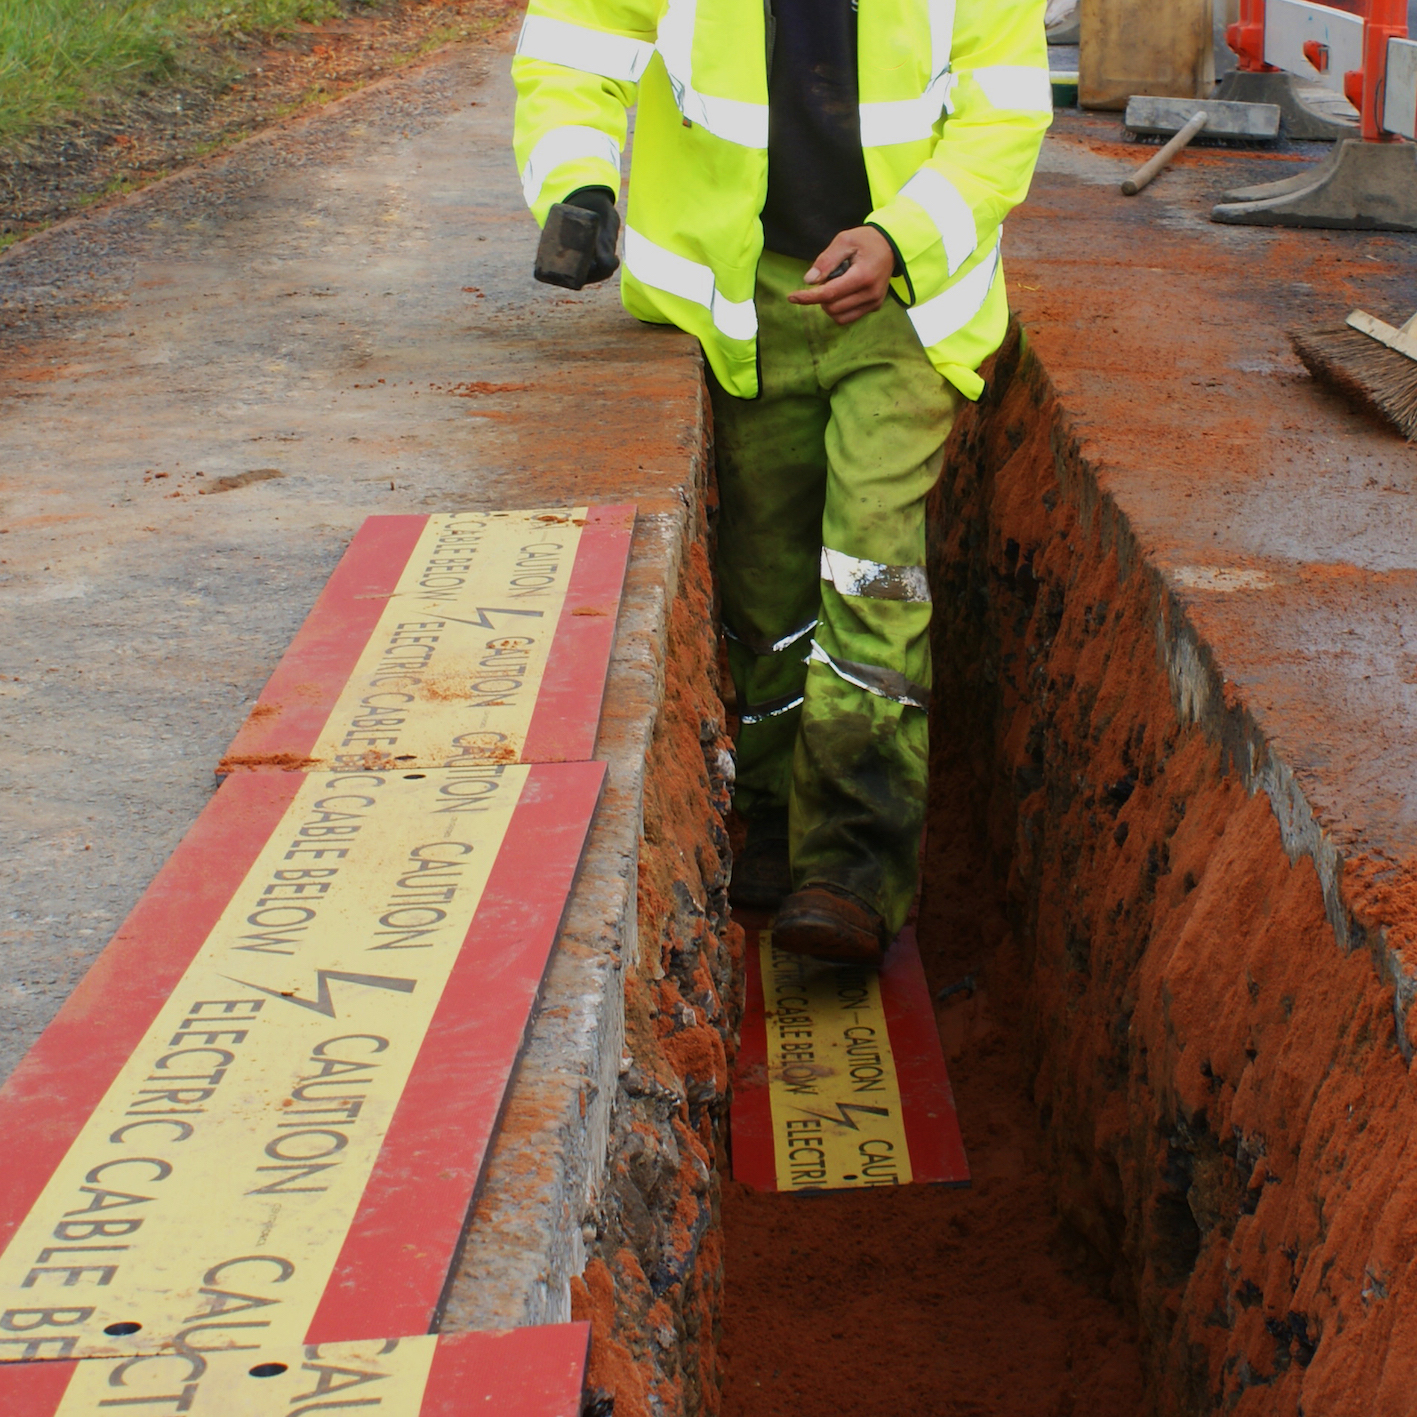 installing stokbord cable cover in a trench